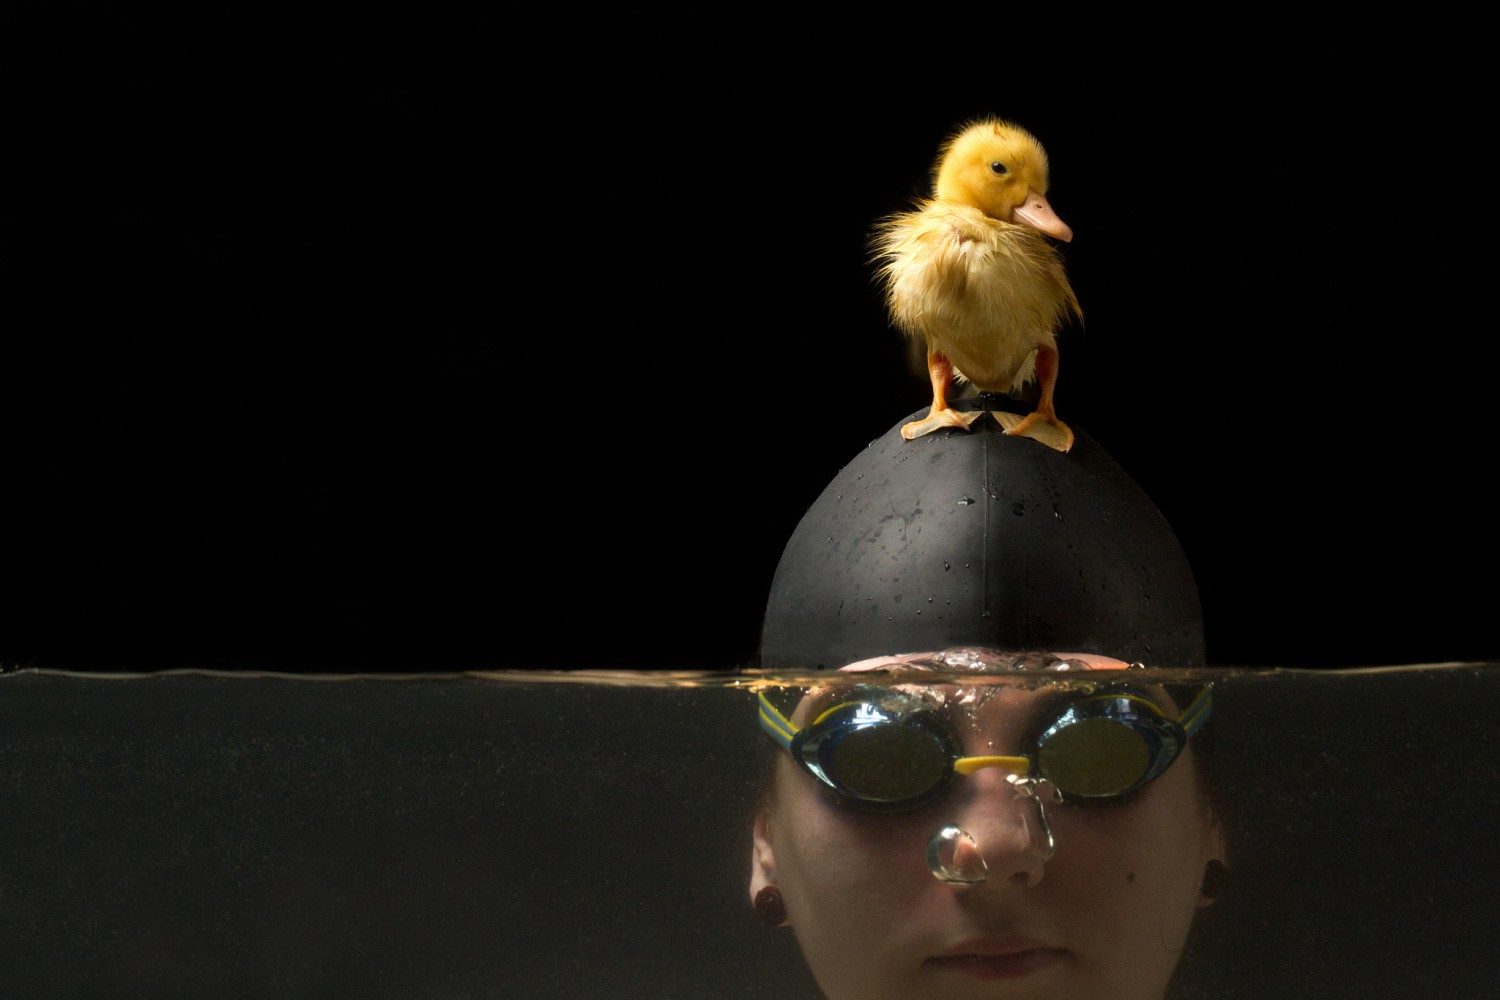 Photos Capture The Adorable Friendship Between a Swimmer & Her Duckling